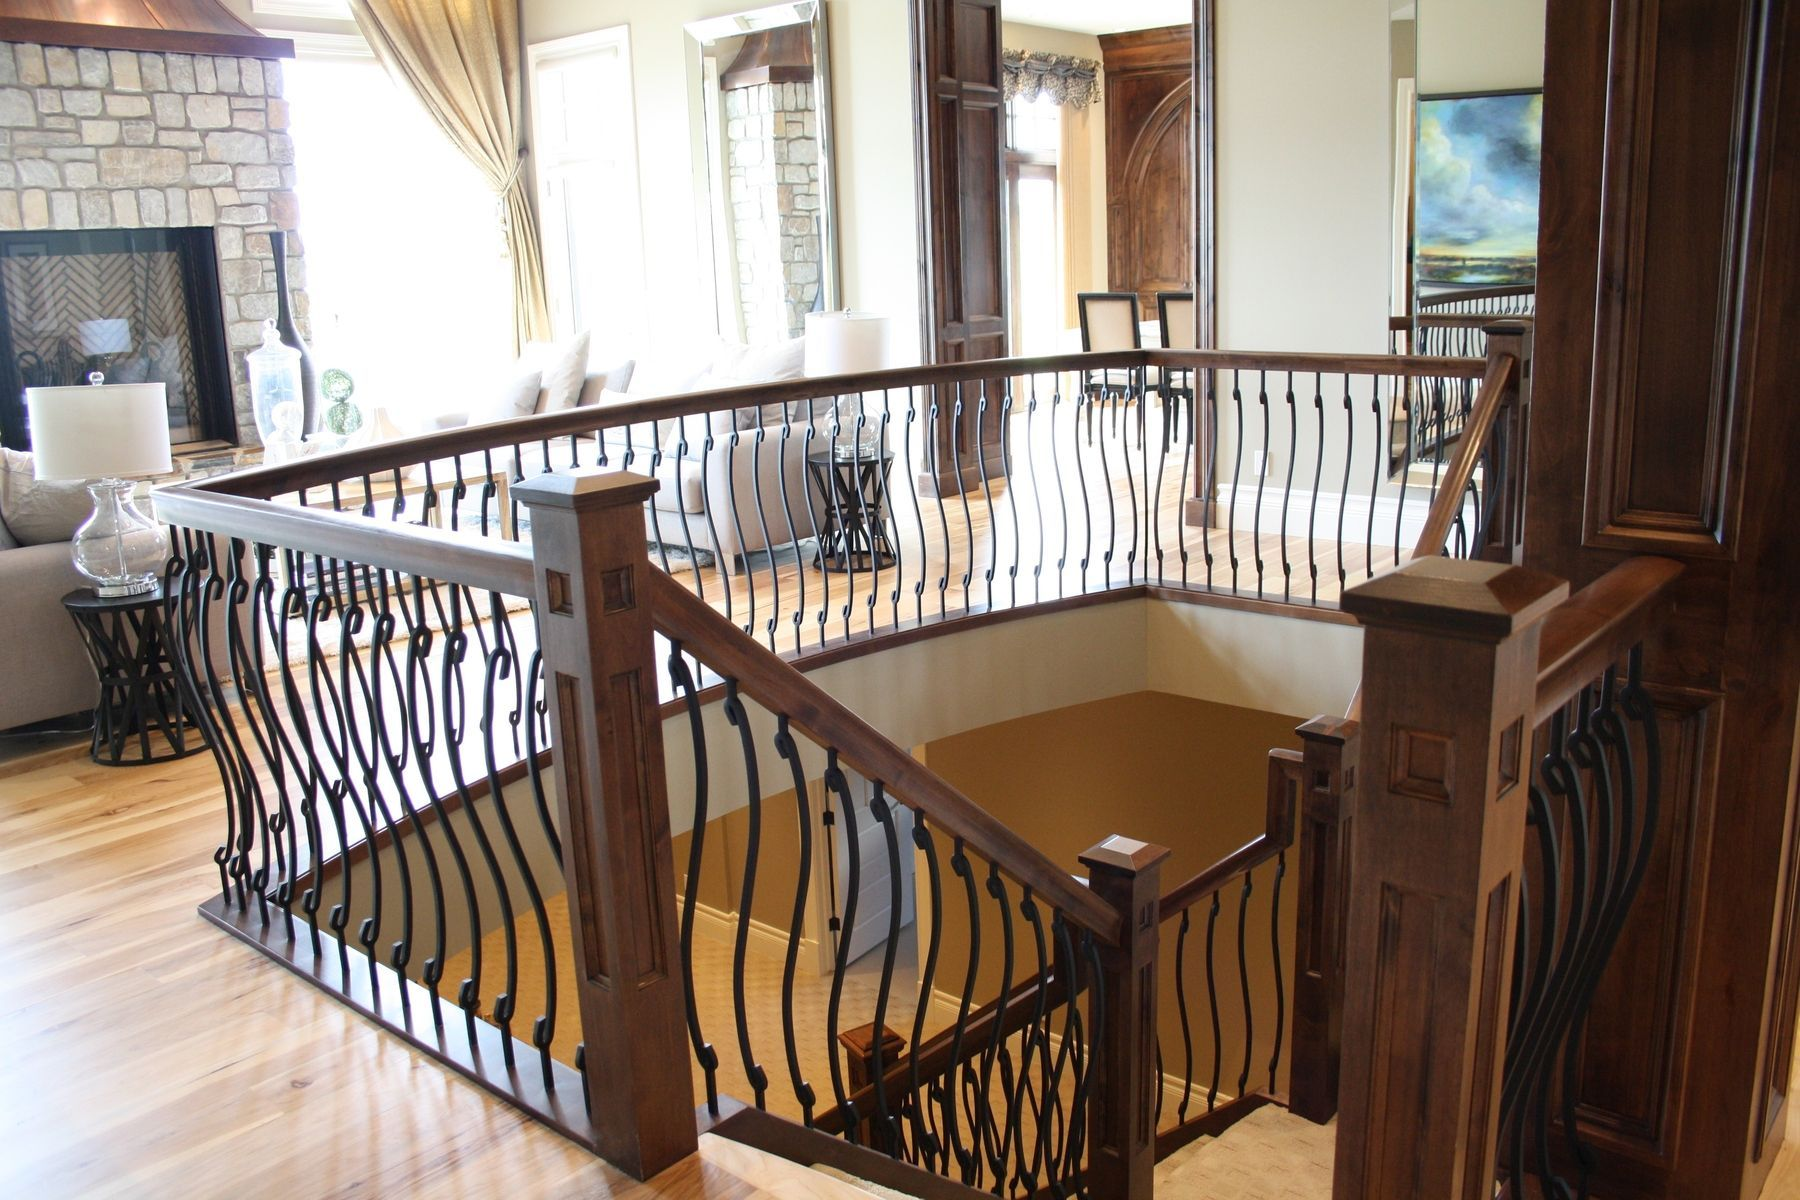 Exceptional Custom Made Wood Stair Rail With S Shaped Spindles